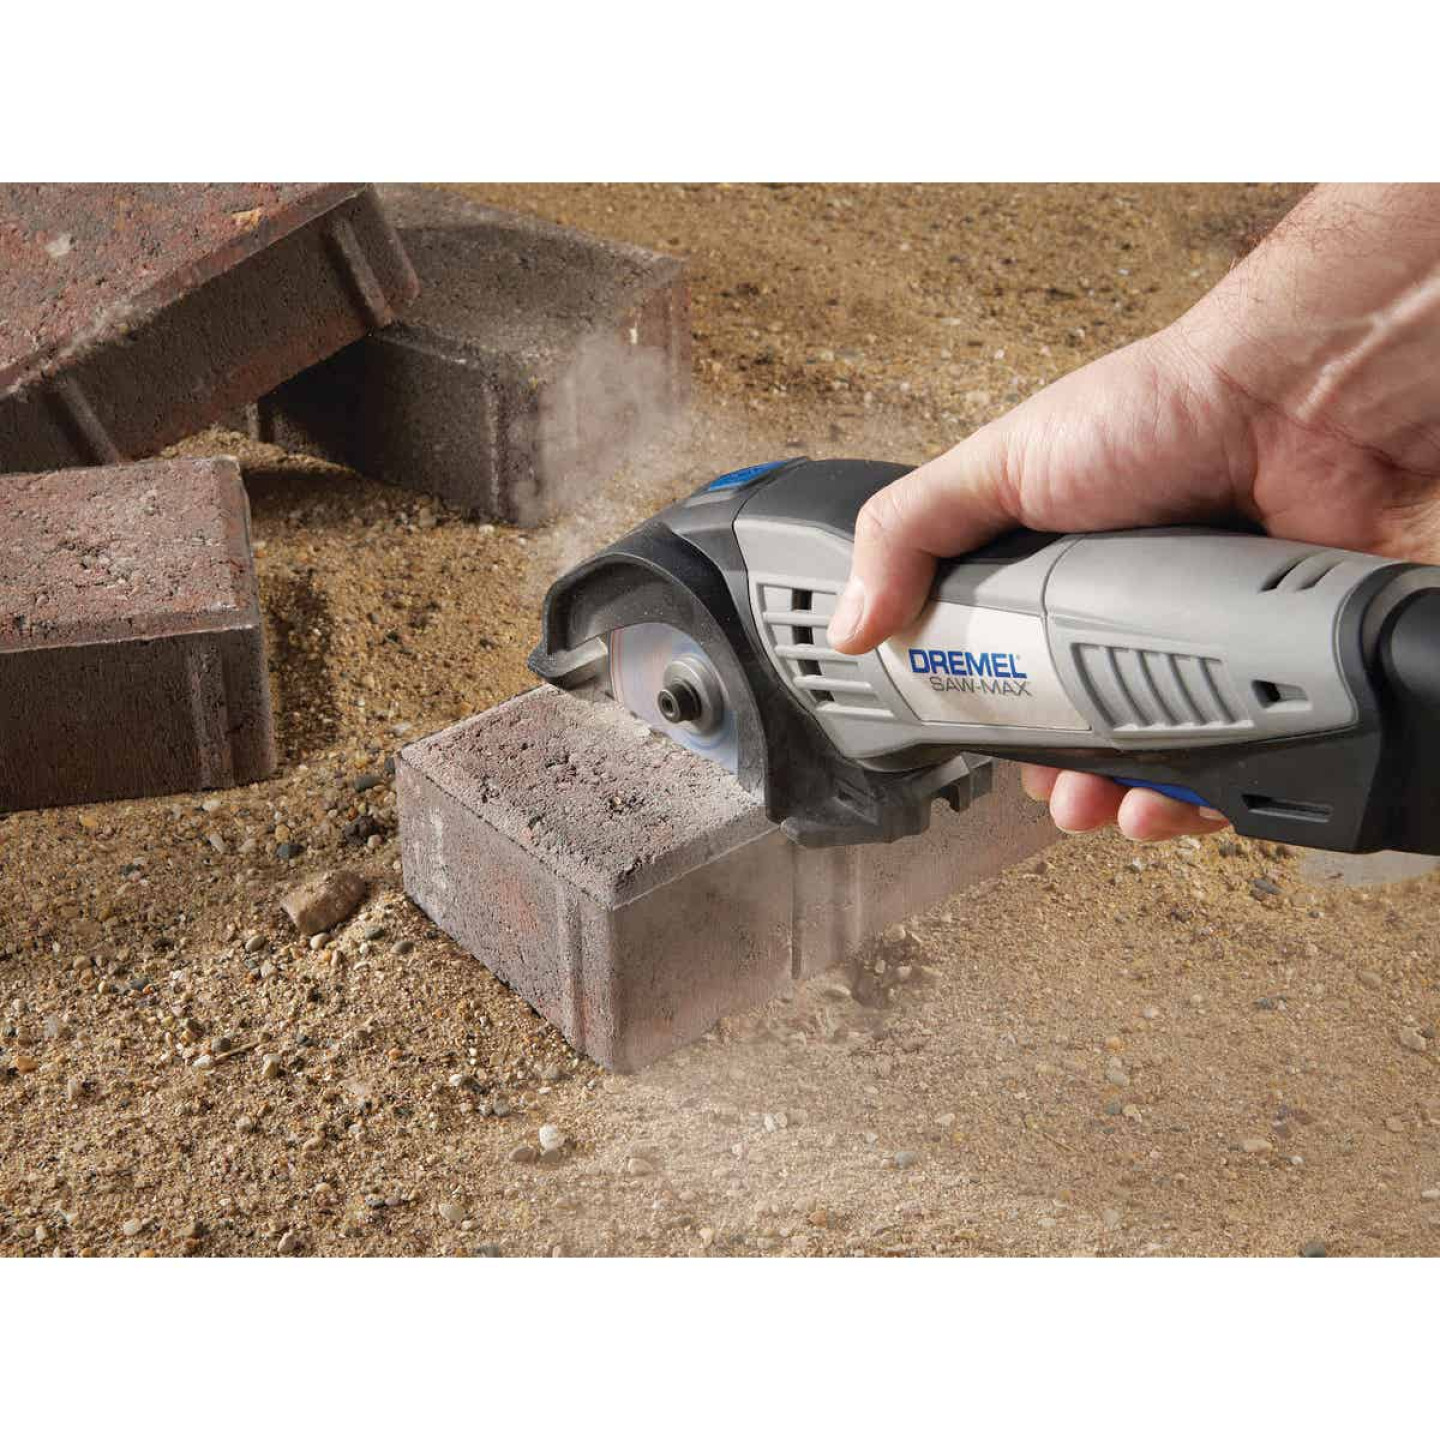 Dremel Saw-Max 3 In. 6-Amp Circular Saw Kit Image 2